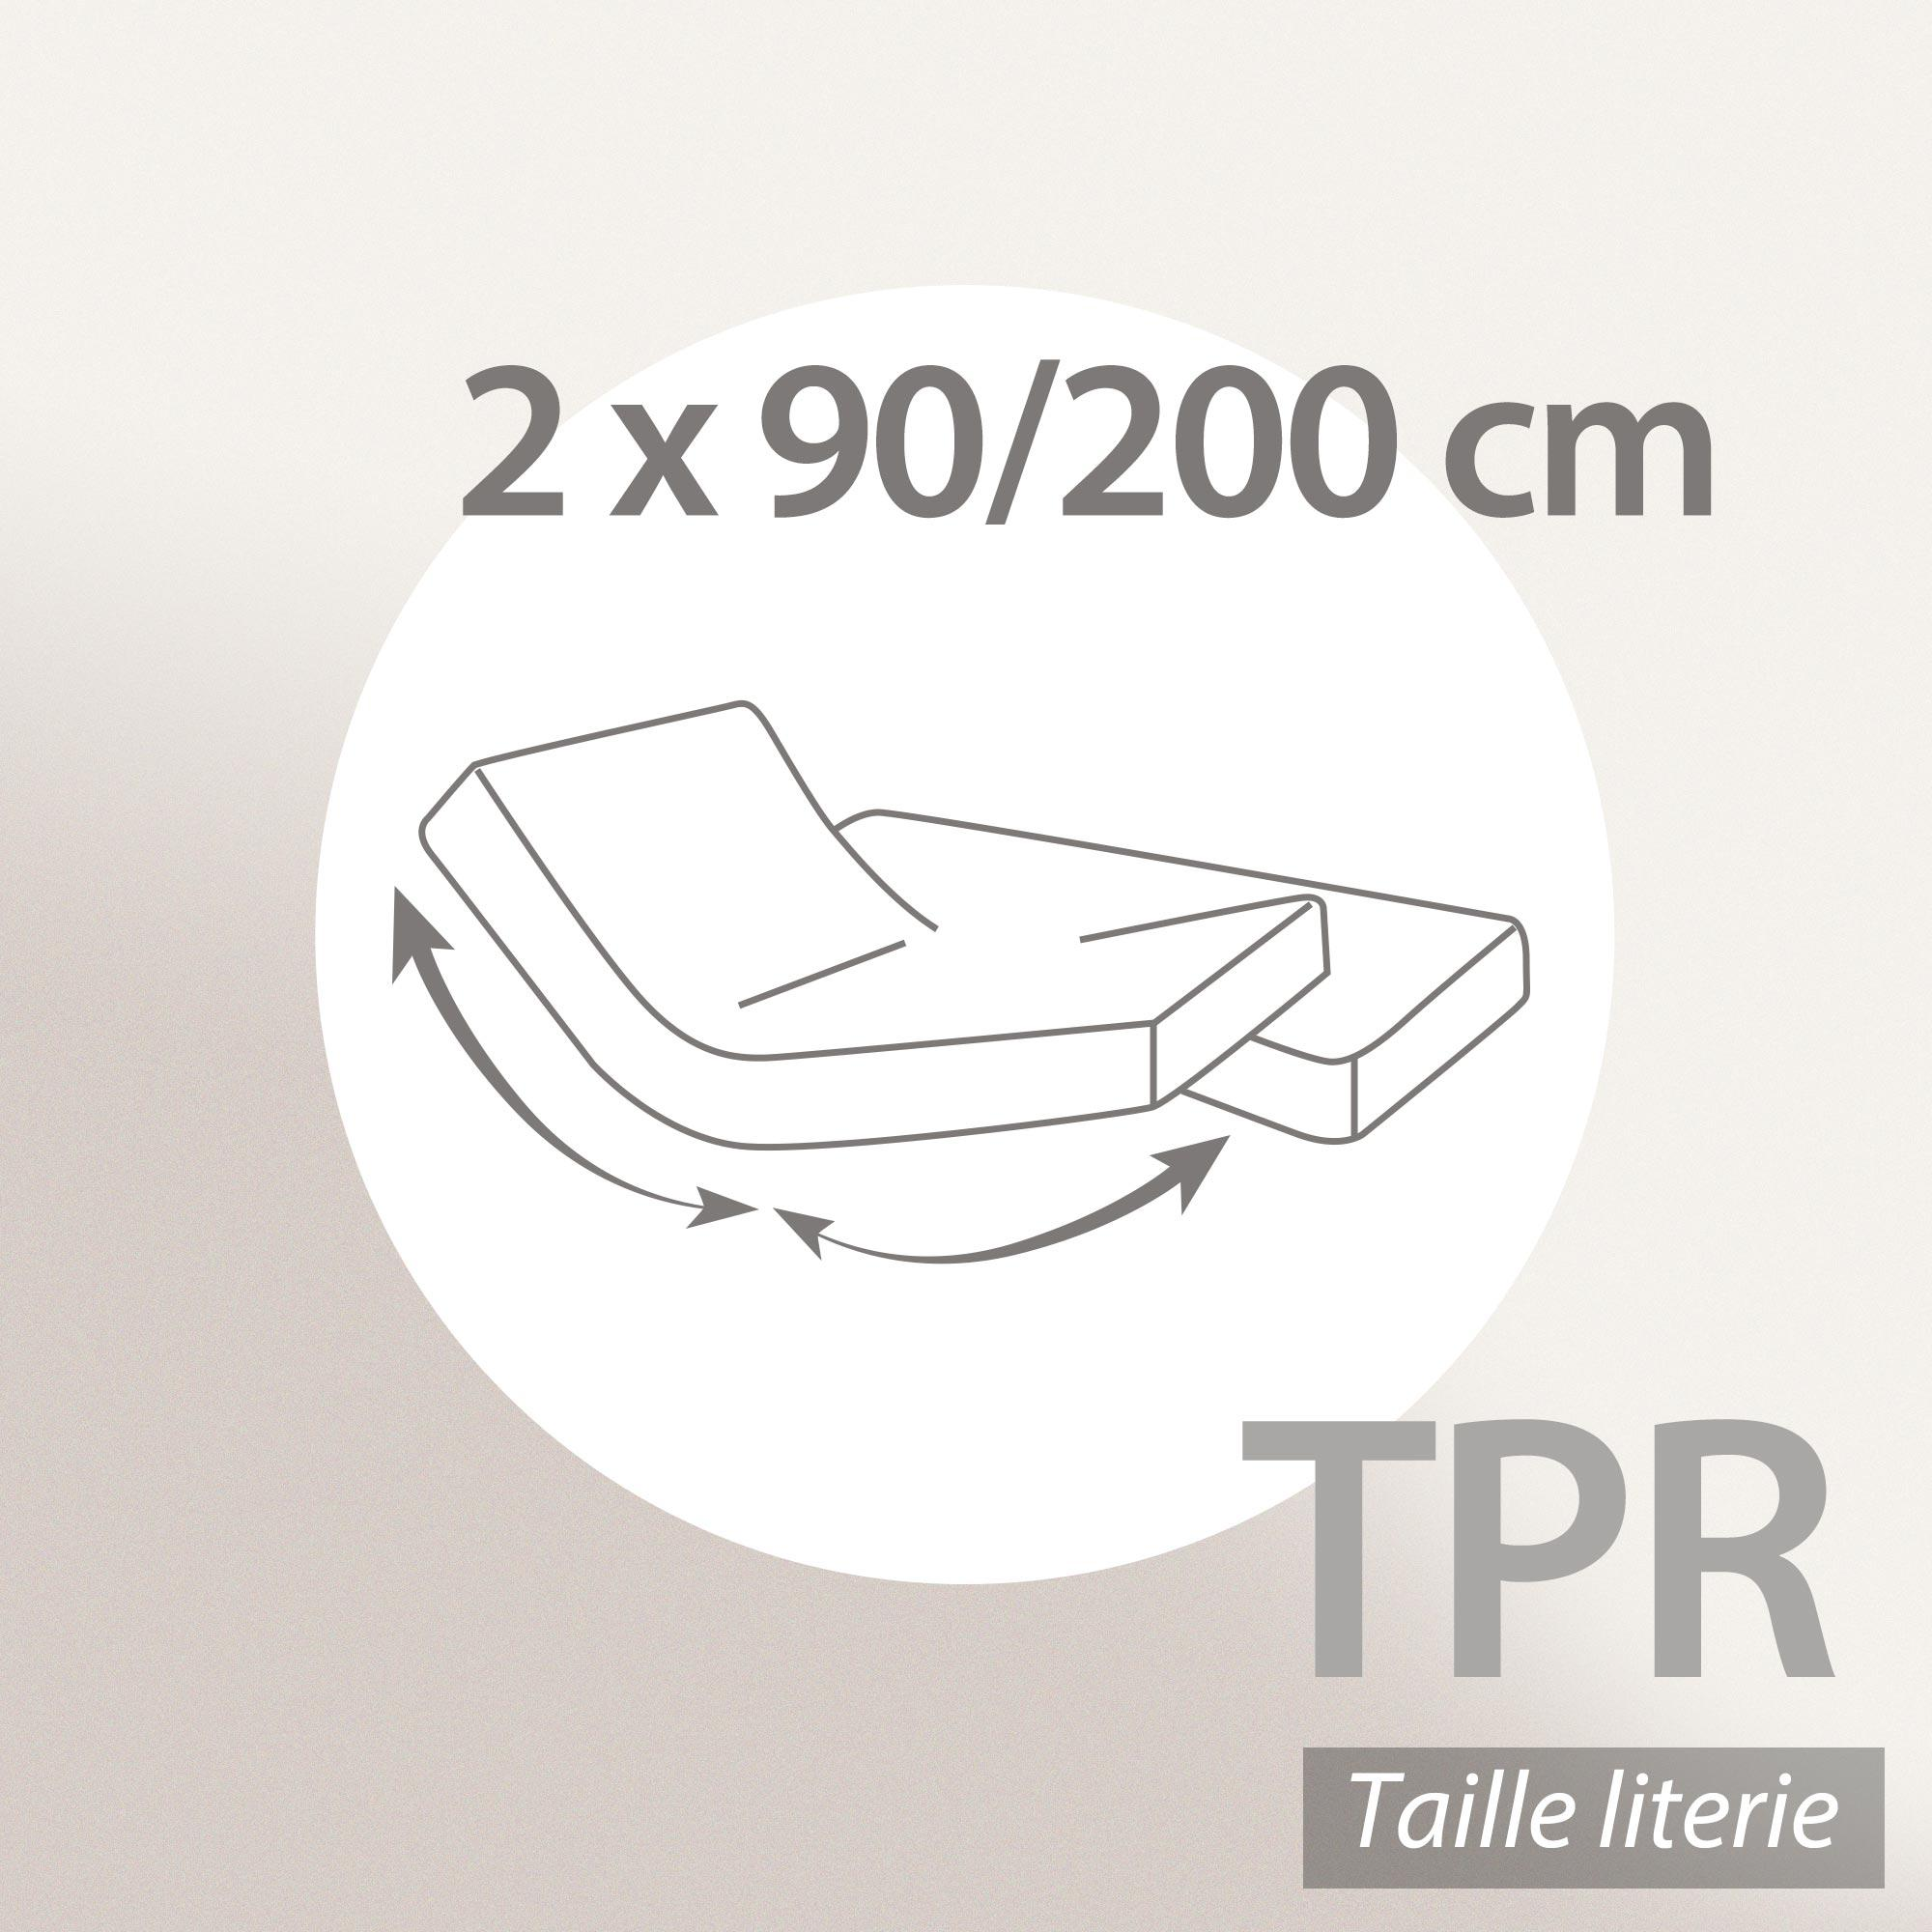 prot ge matelas imperm able 2x90x200 cm lit articul tpr bonnet 23cm arnon molleton 100 coton. Black Bedroom Furniture Sets. Home Design Ideas